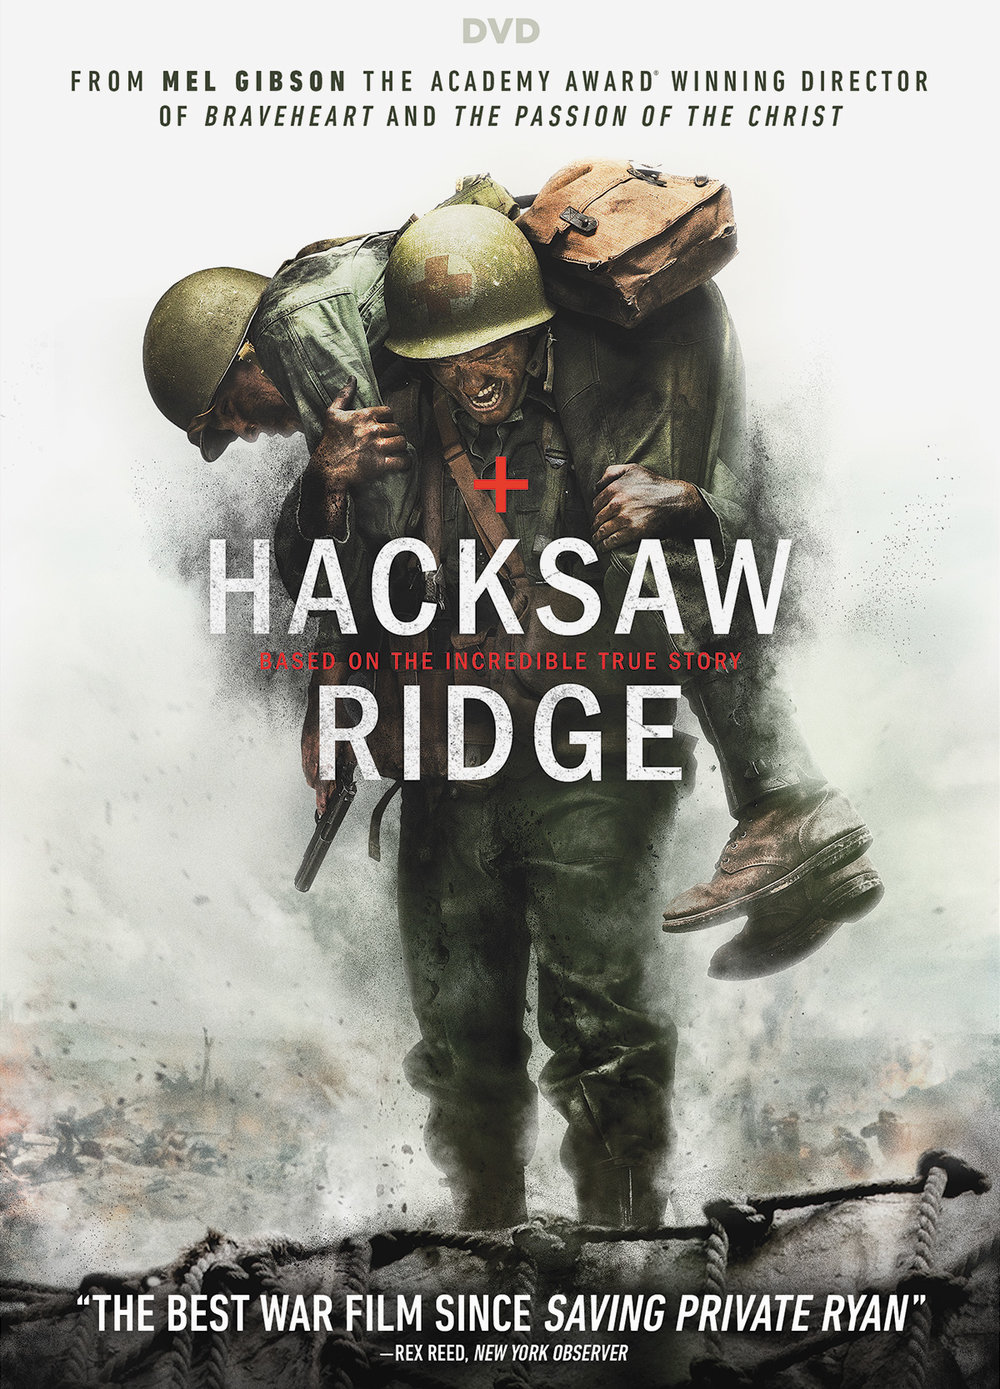 Hacksaw ridge (motion picture)